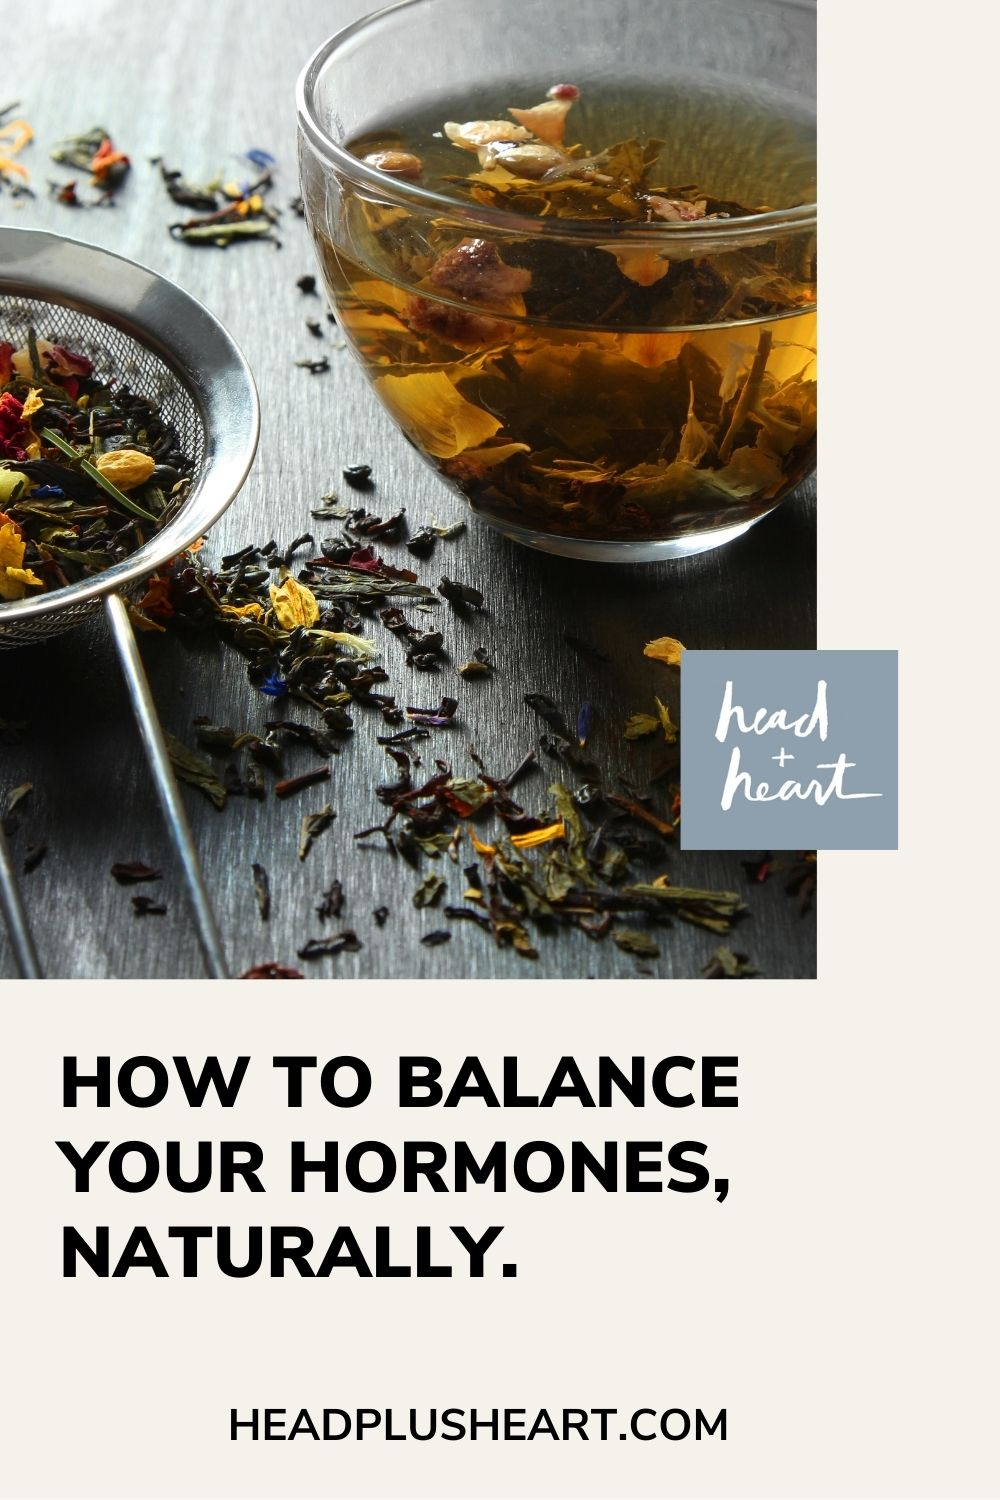 How to balance your hormones using natural herbal remedies.